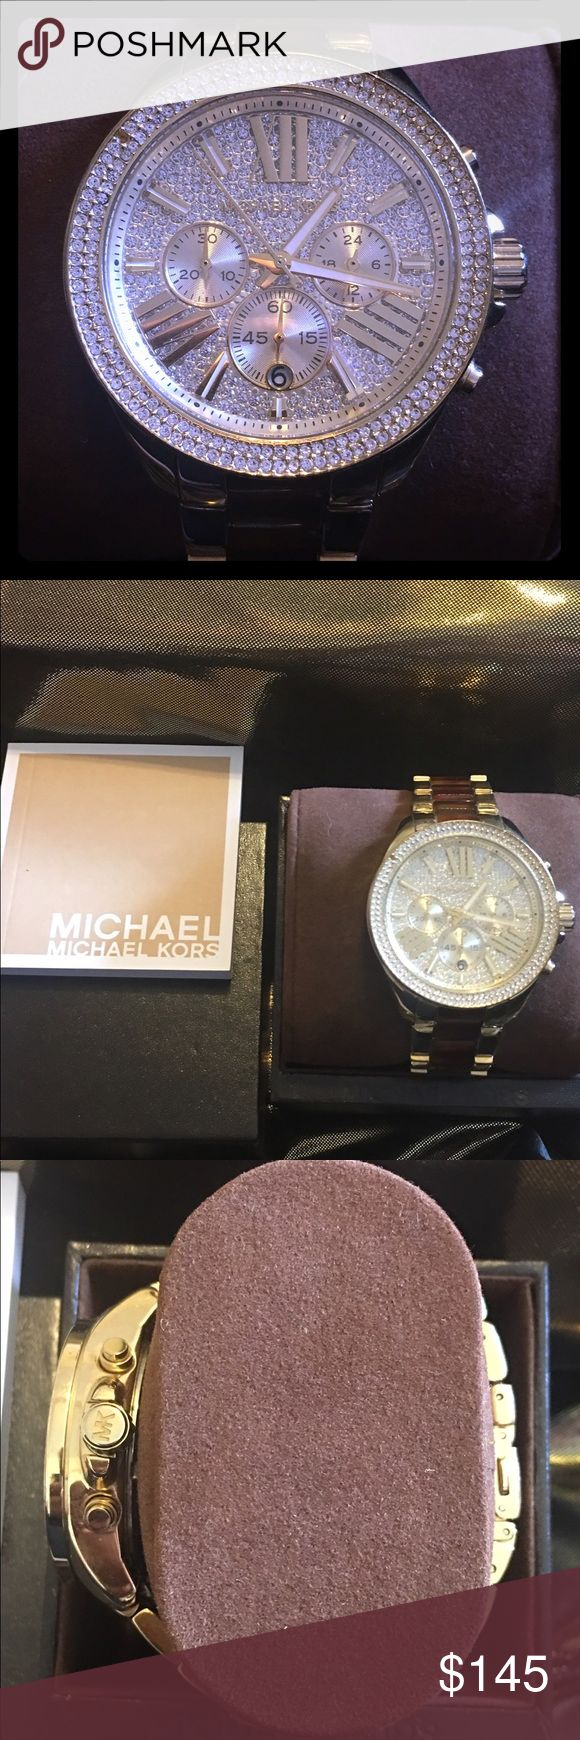 Michael Kors Tortoise and gold tone Amber Watch ⌚️ NEW WOMENS MICHAEL KORS (MK6294) GOLD TONE AMBER TORTOISE WATCH new comes w box and warranty book retail 395.00 Michael Kors Accessories